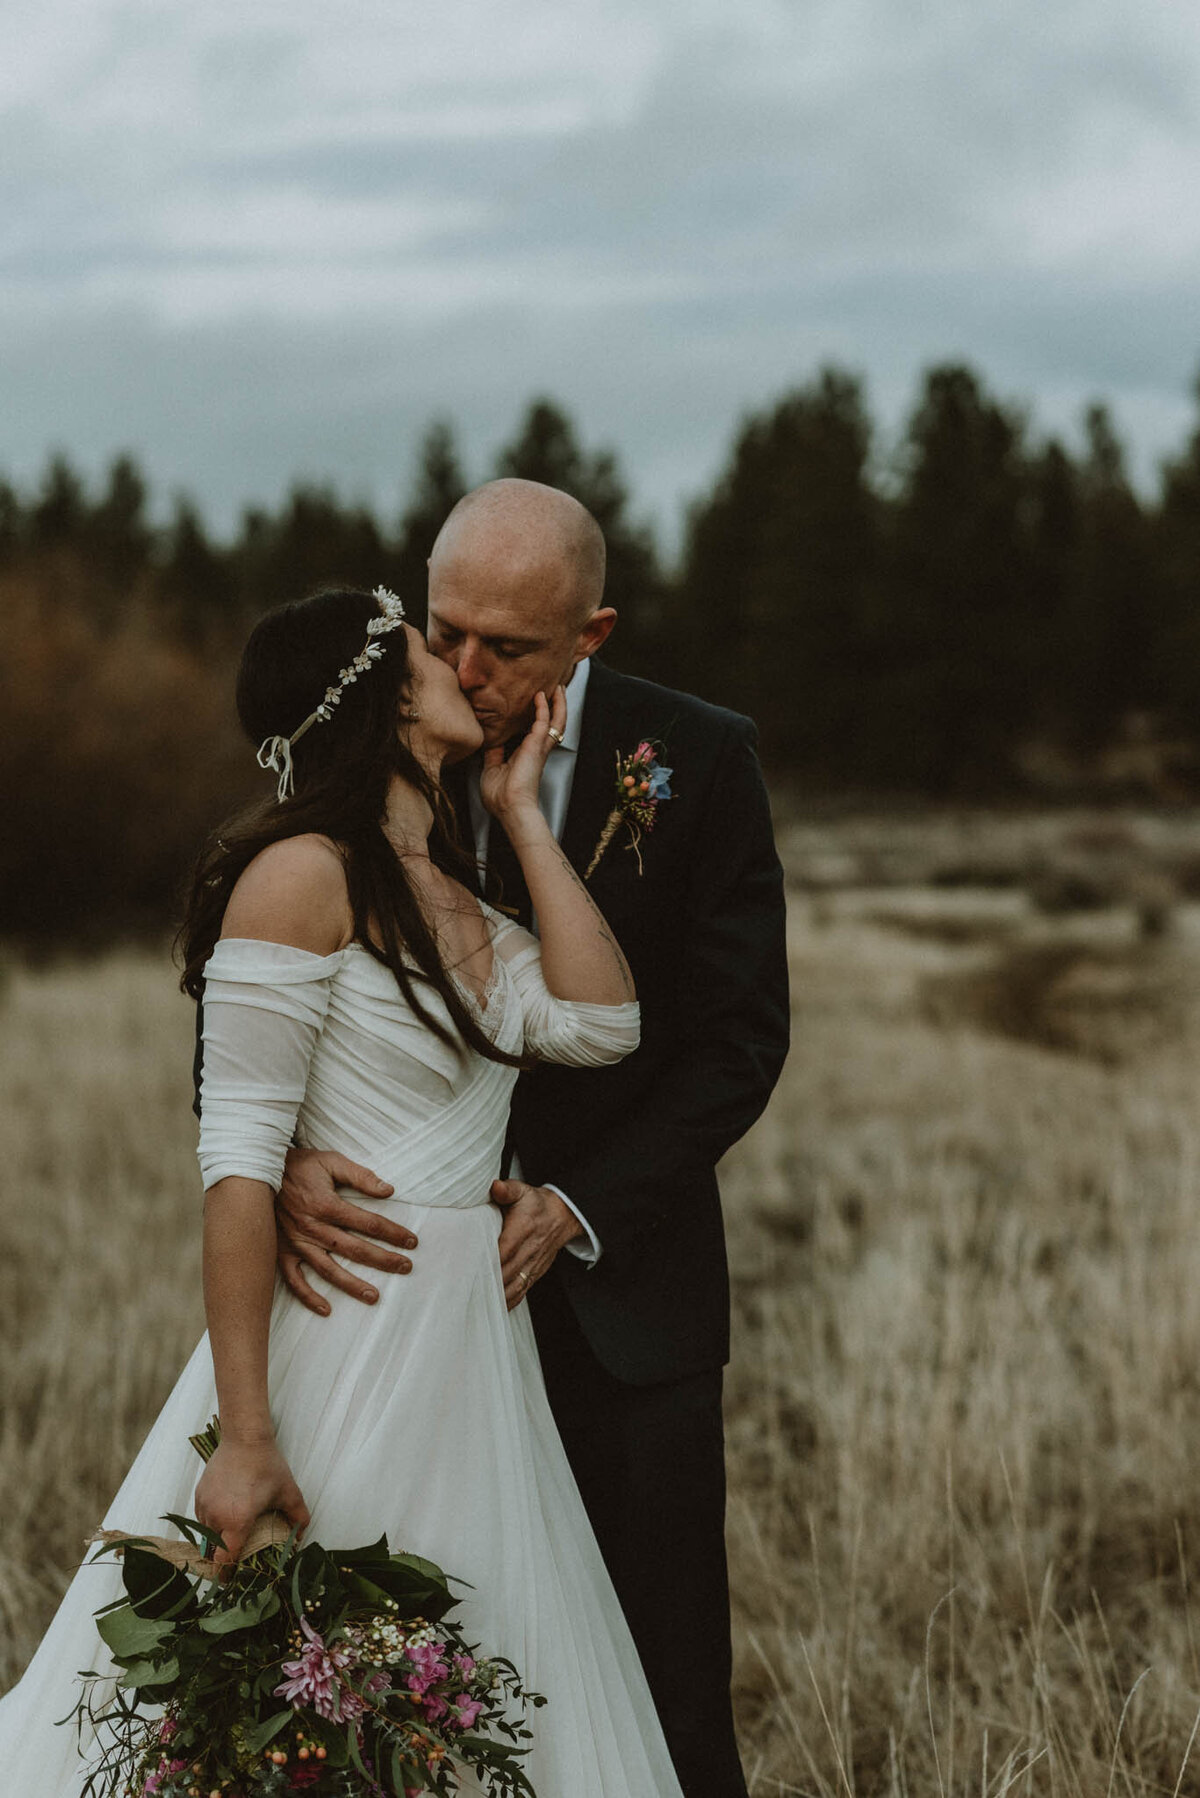 meredith_j_photography_elopement (5 of 8)